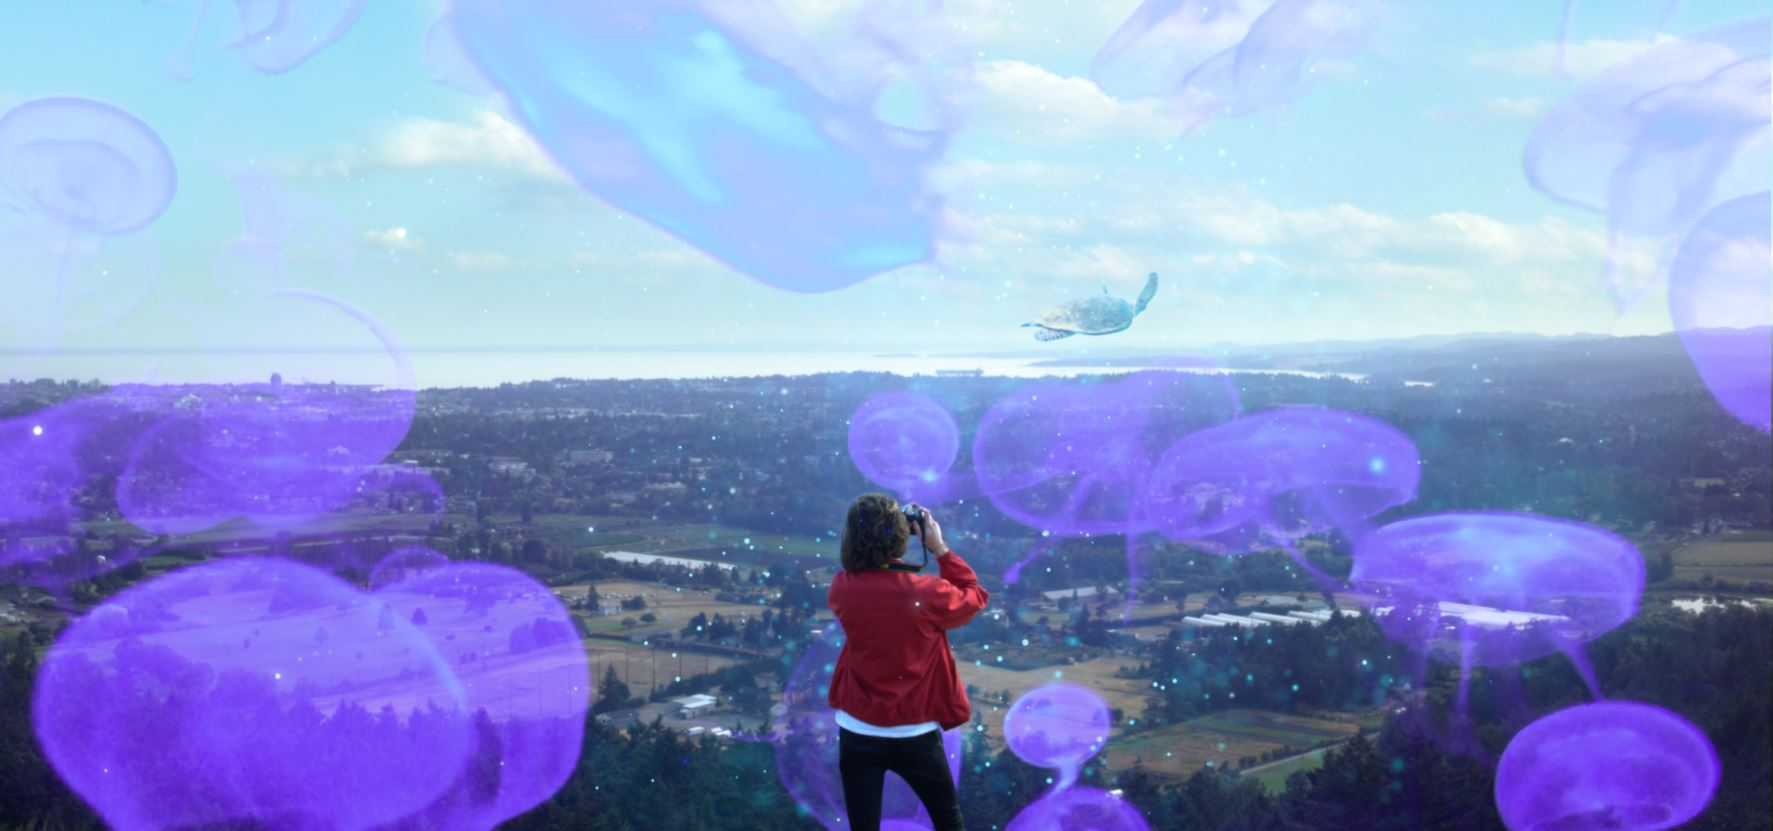 The back of a young woman holding a camera up, taking a photograph of the vast landscape in front of her. There is a flying turtle in the distance and bright purple translucent jellyfish in the sky all around her.